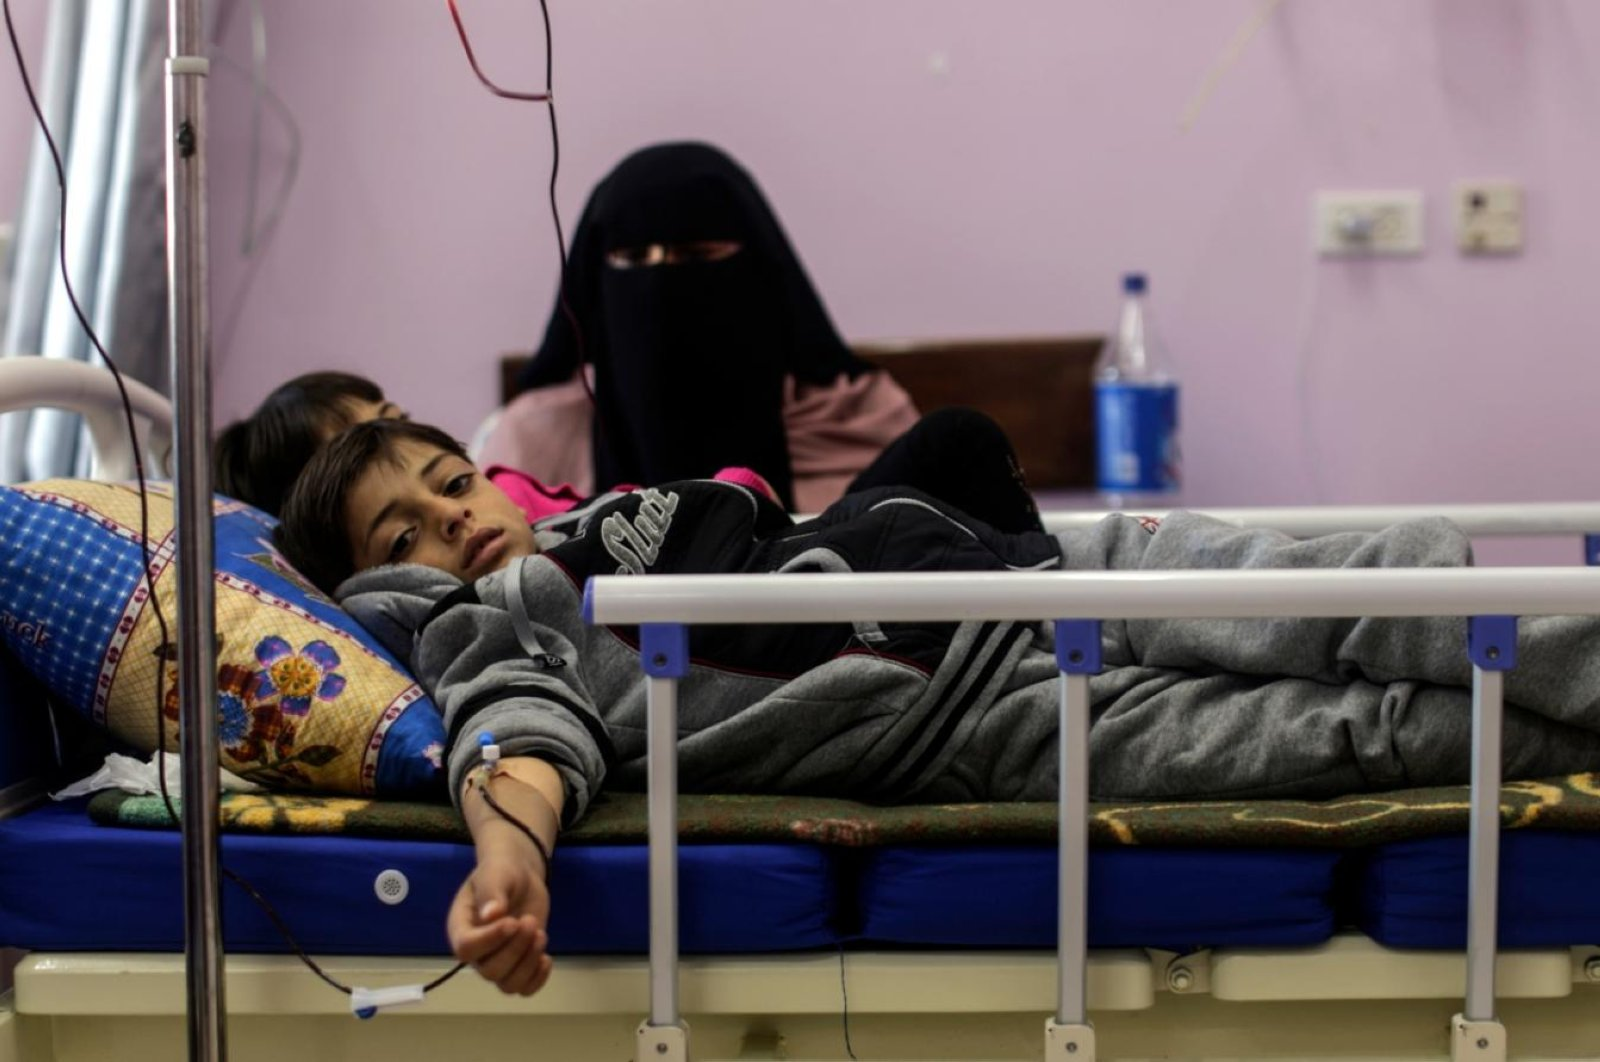 Palestinian children suffering from cancer receive treatment at a hospital, Gaza City, Feb. 13, 2018.